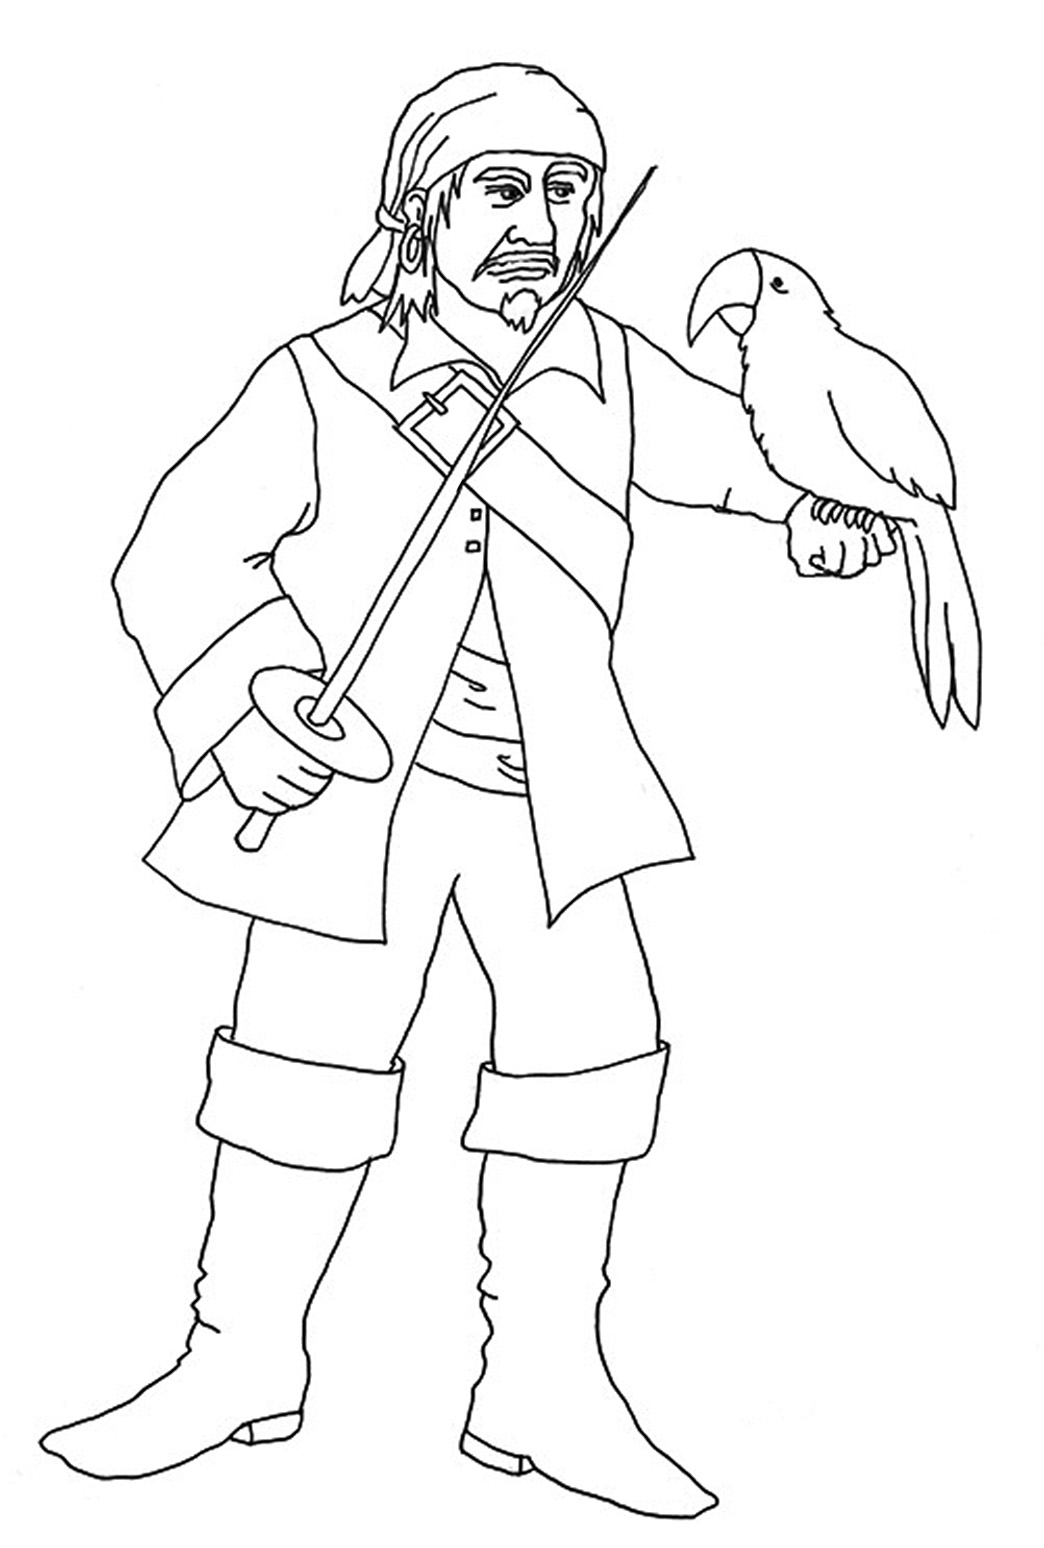 pirates pictures to colour jake the leader of never land pirates coloring page kids pirates colour pictures to